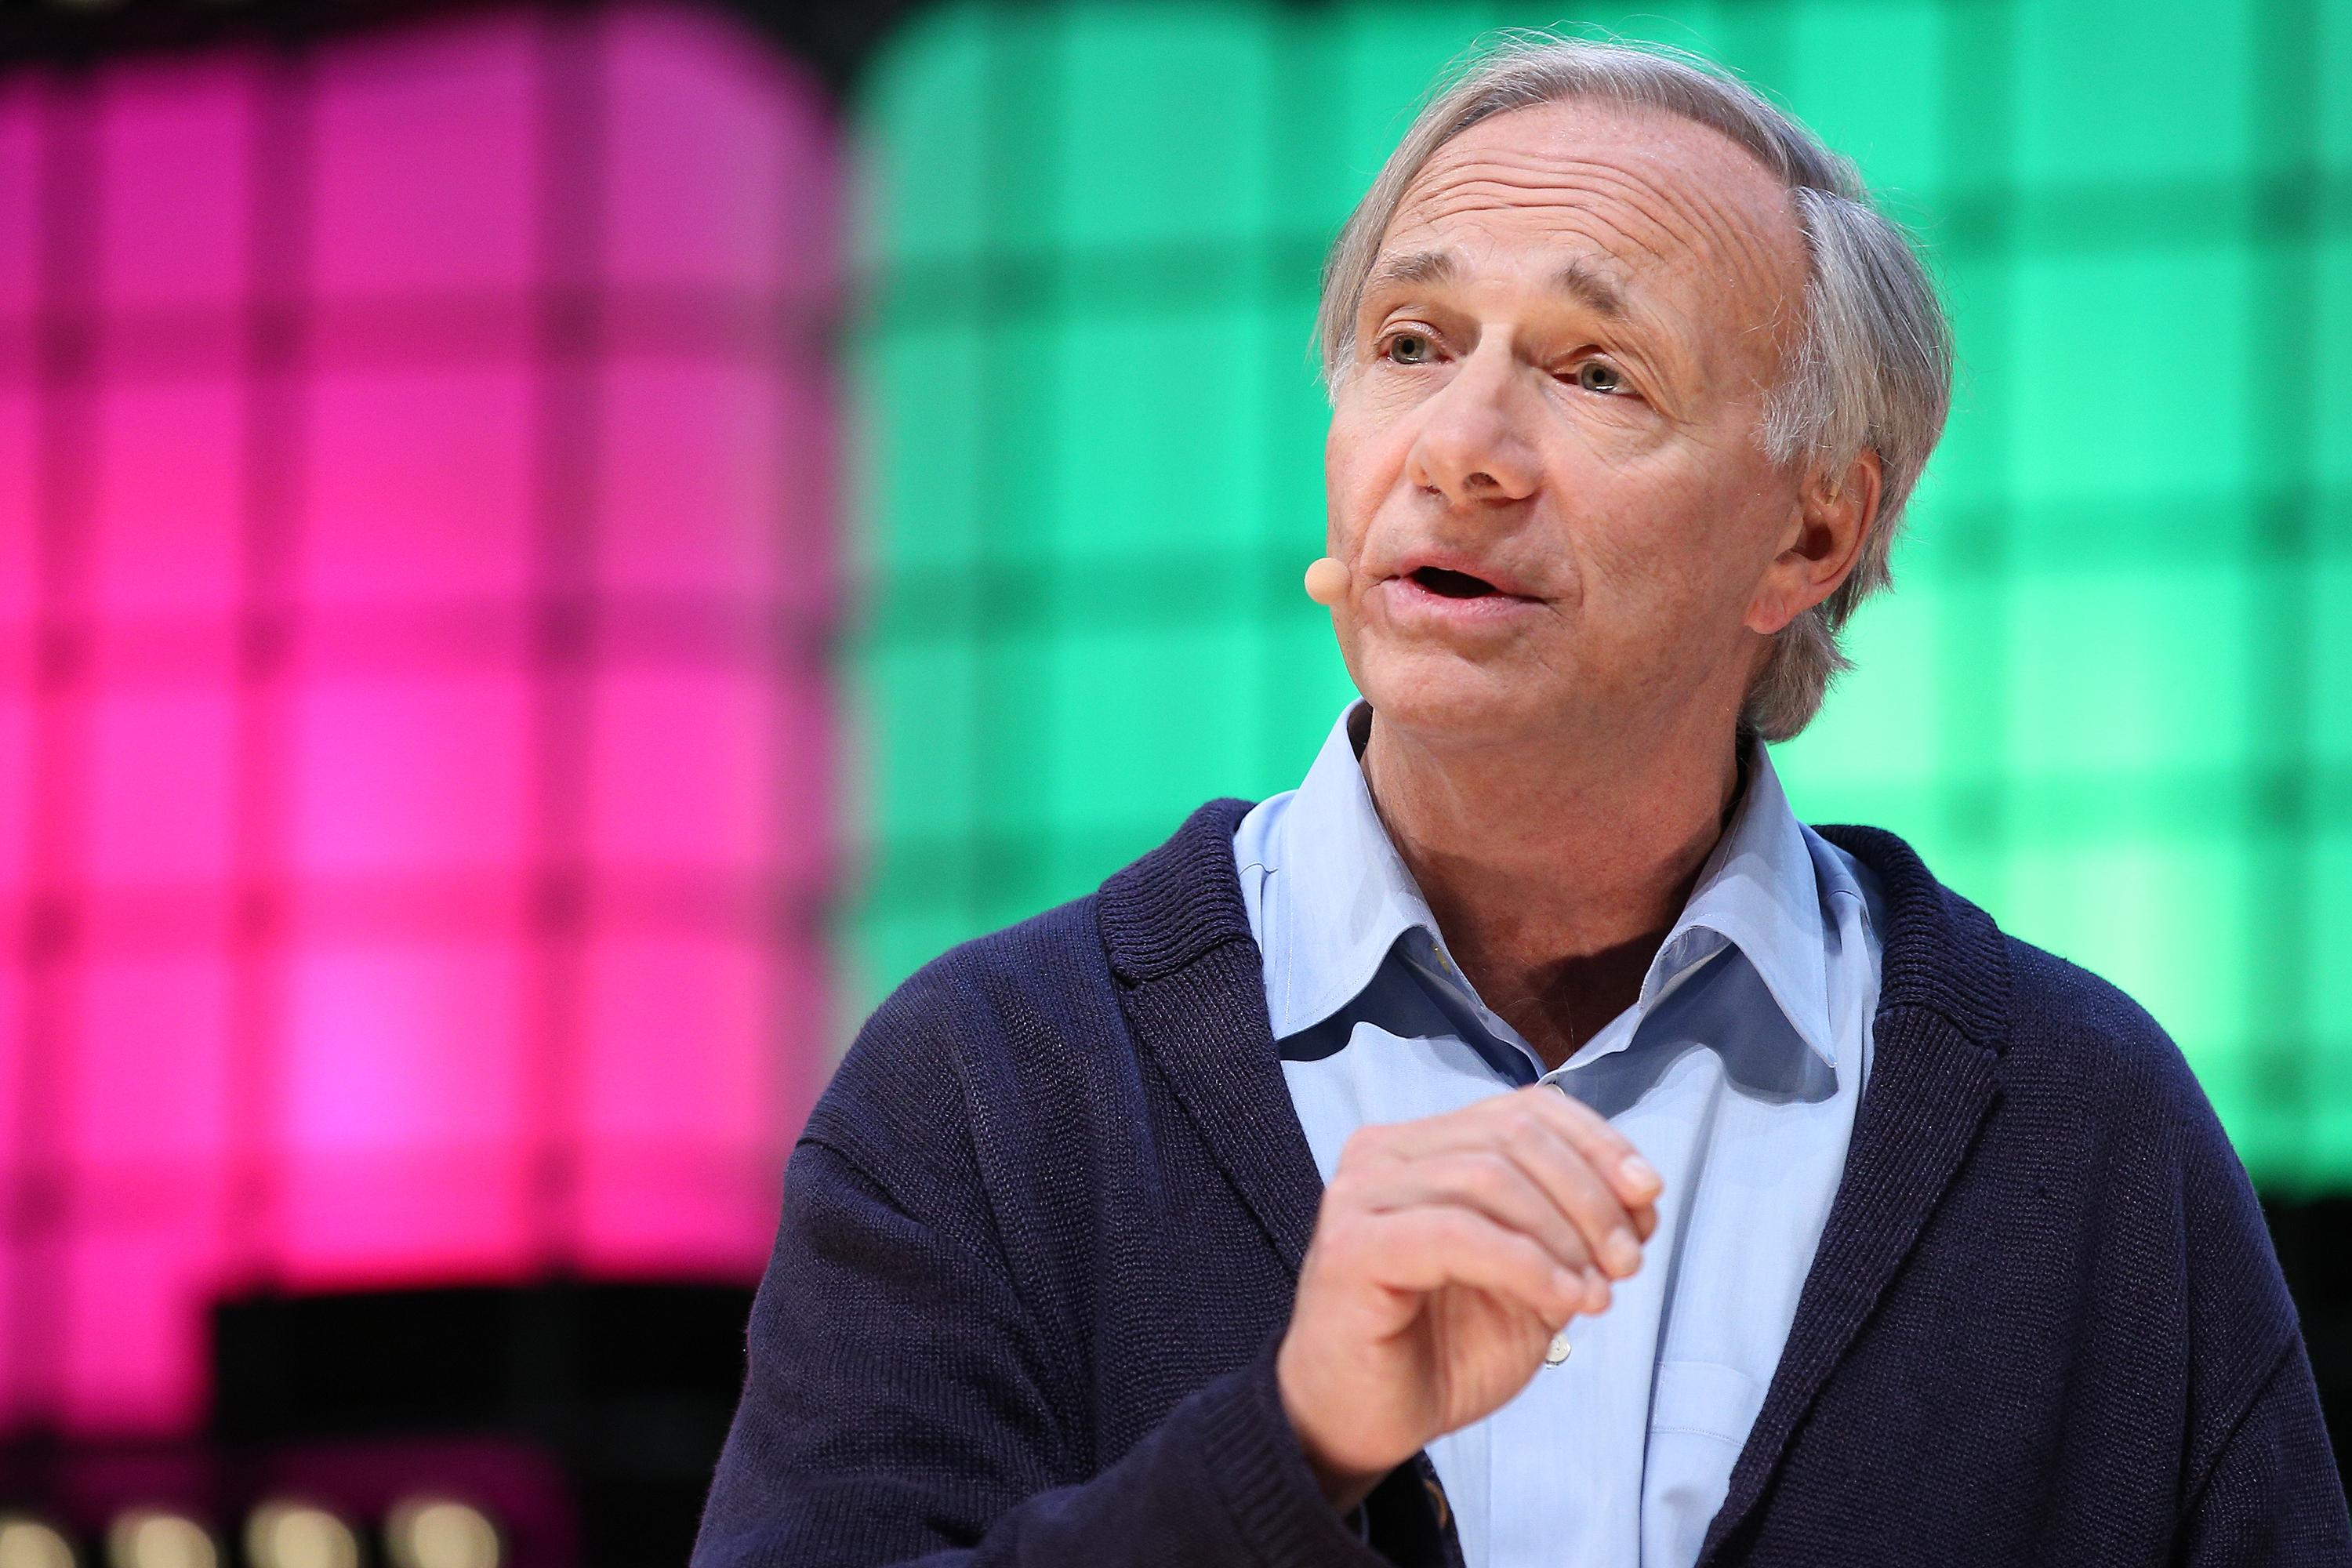 Why hedge fund billionaire Ray Dalio loves Silicon Valley